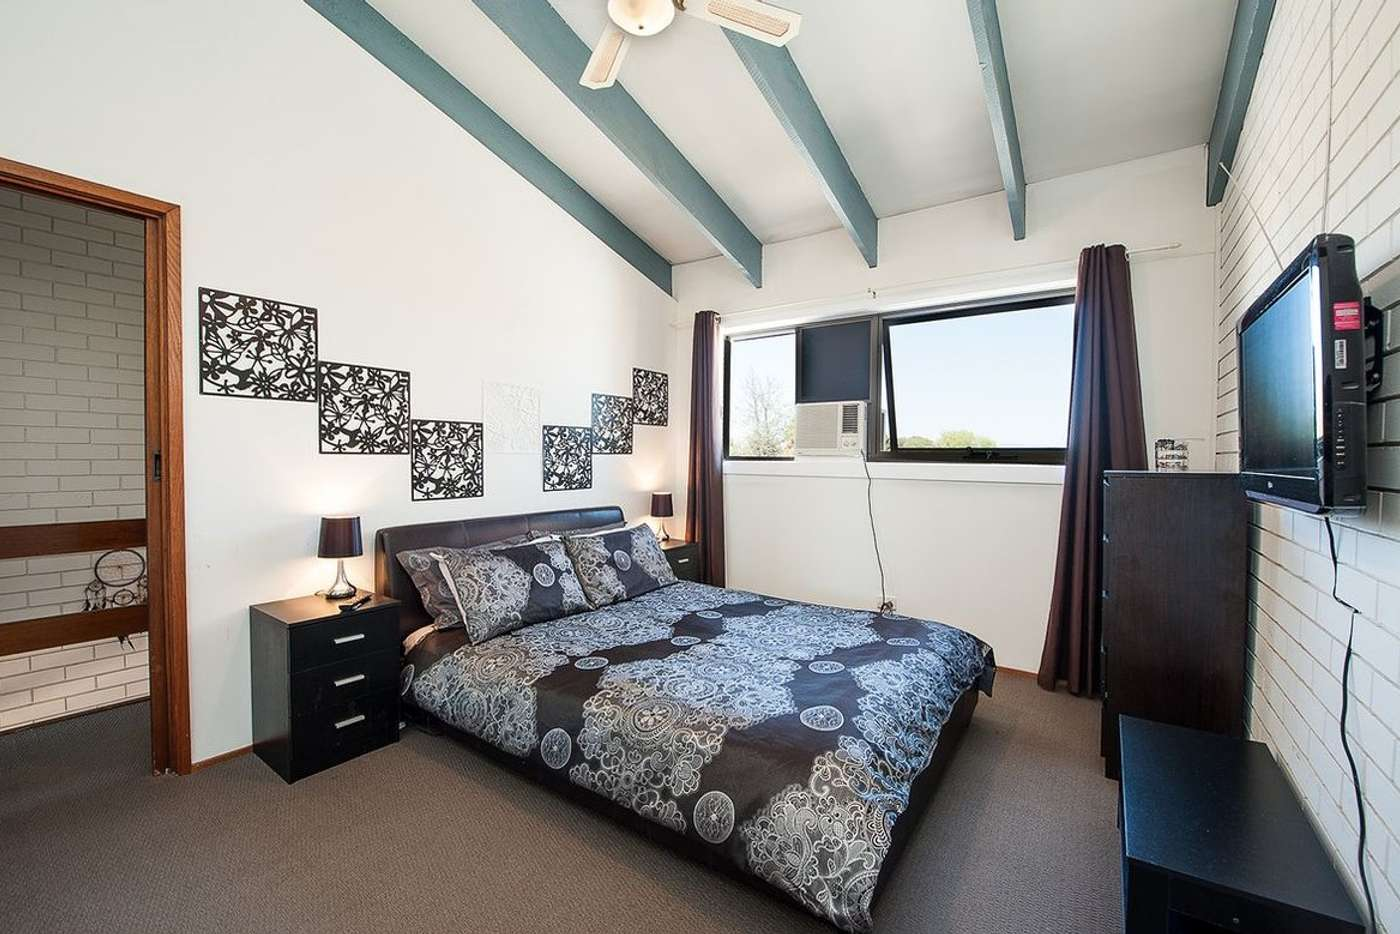 Sixth view of Homely unit listing, 28/588 Oliver Street, Lavington NSW 2641